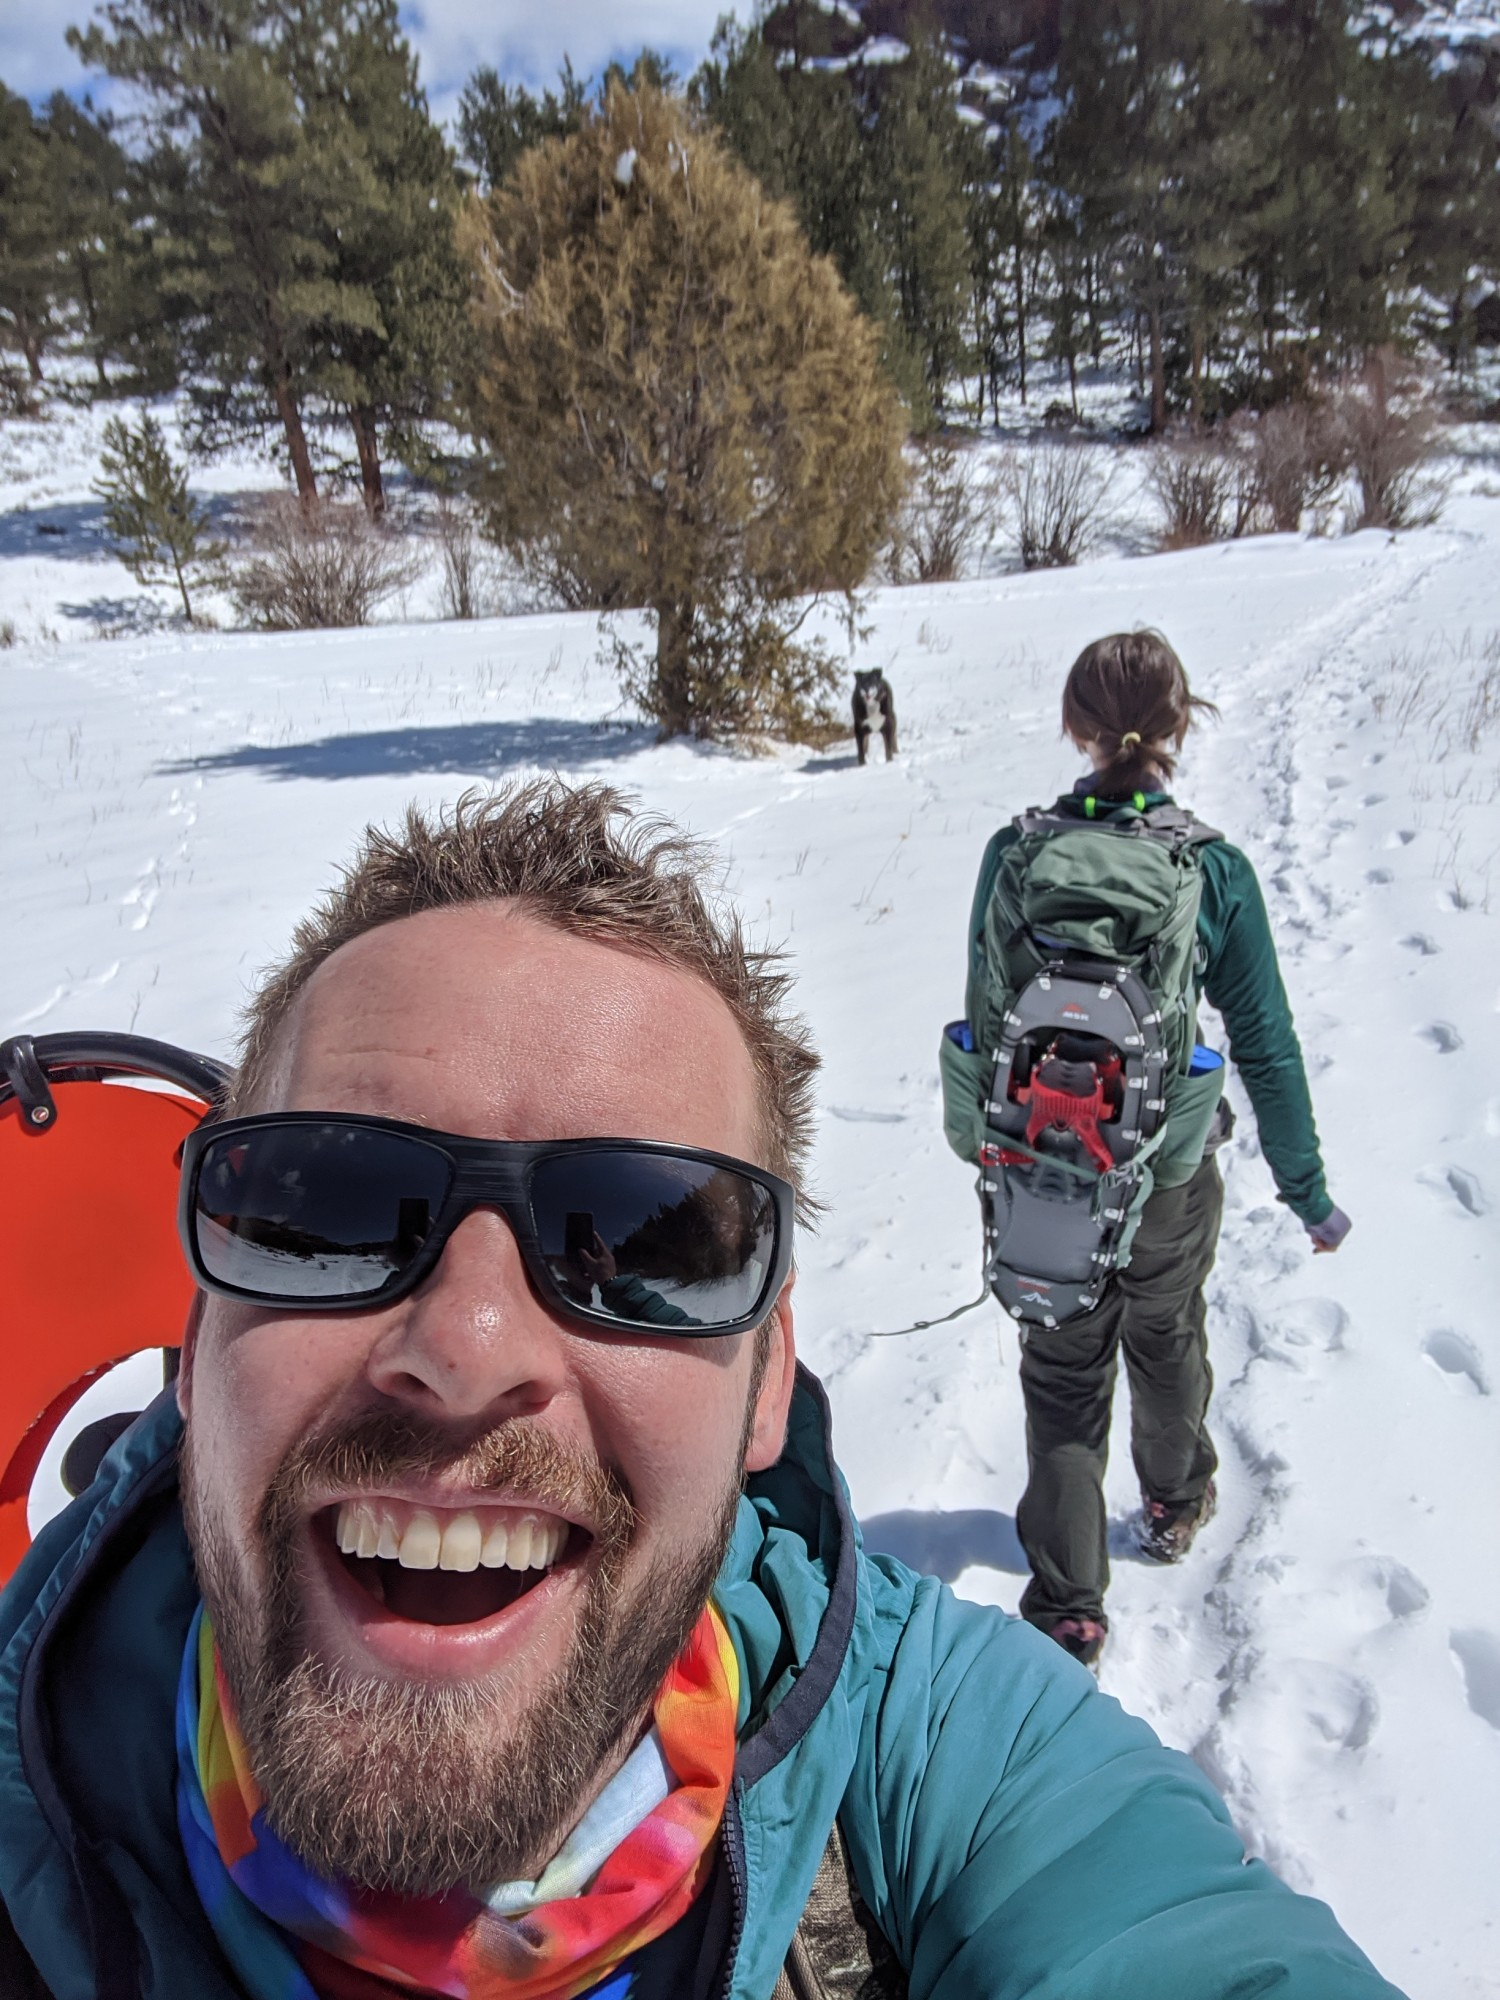 snowshoeing selfie with dog and woman walking away